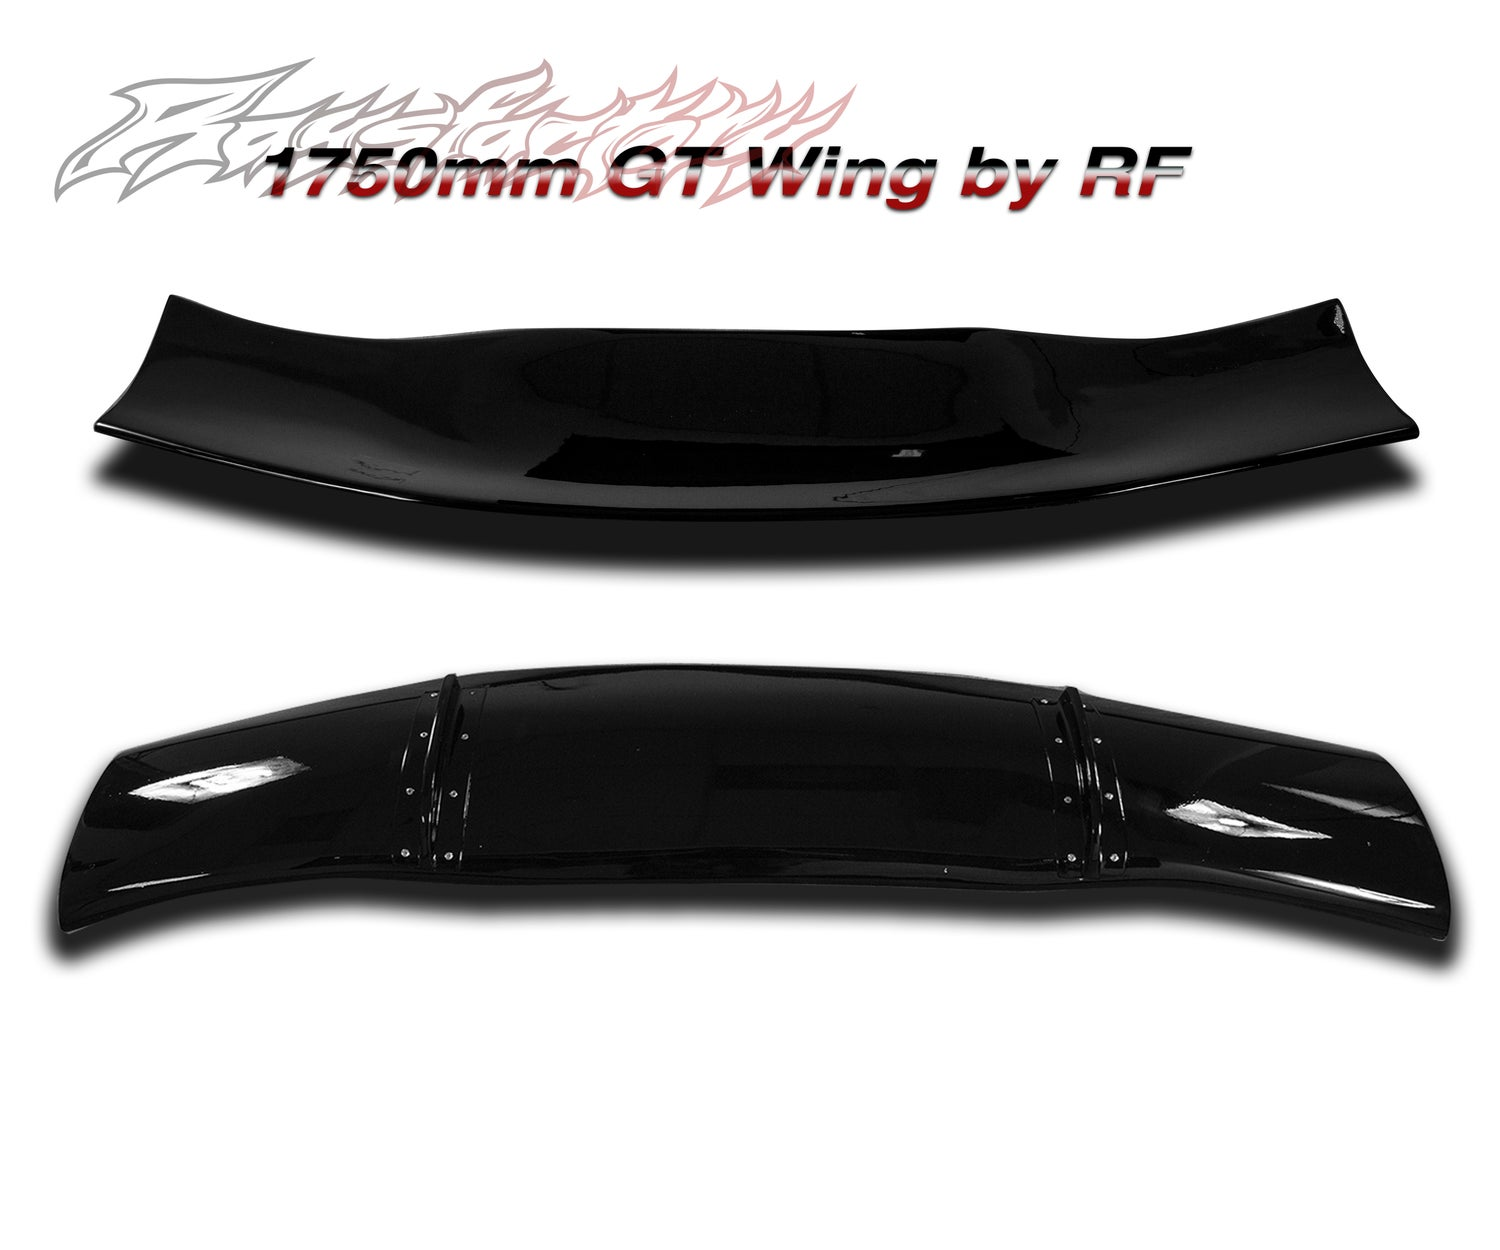 Image of Raysfactory 1750mm FRP GT Wing (Deck Only)